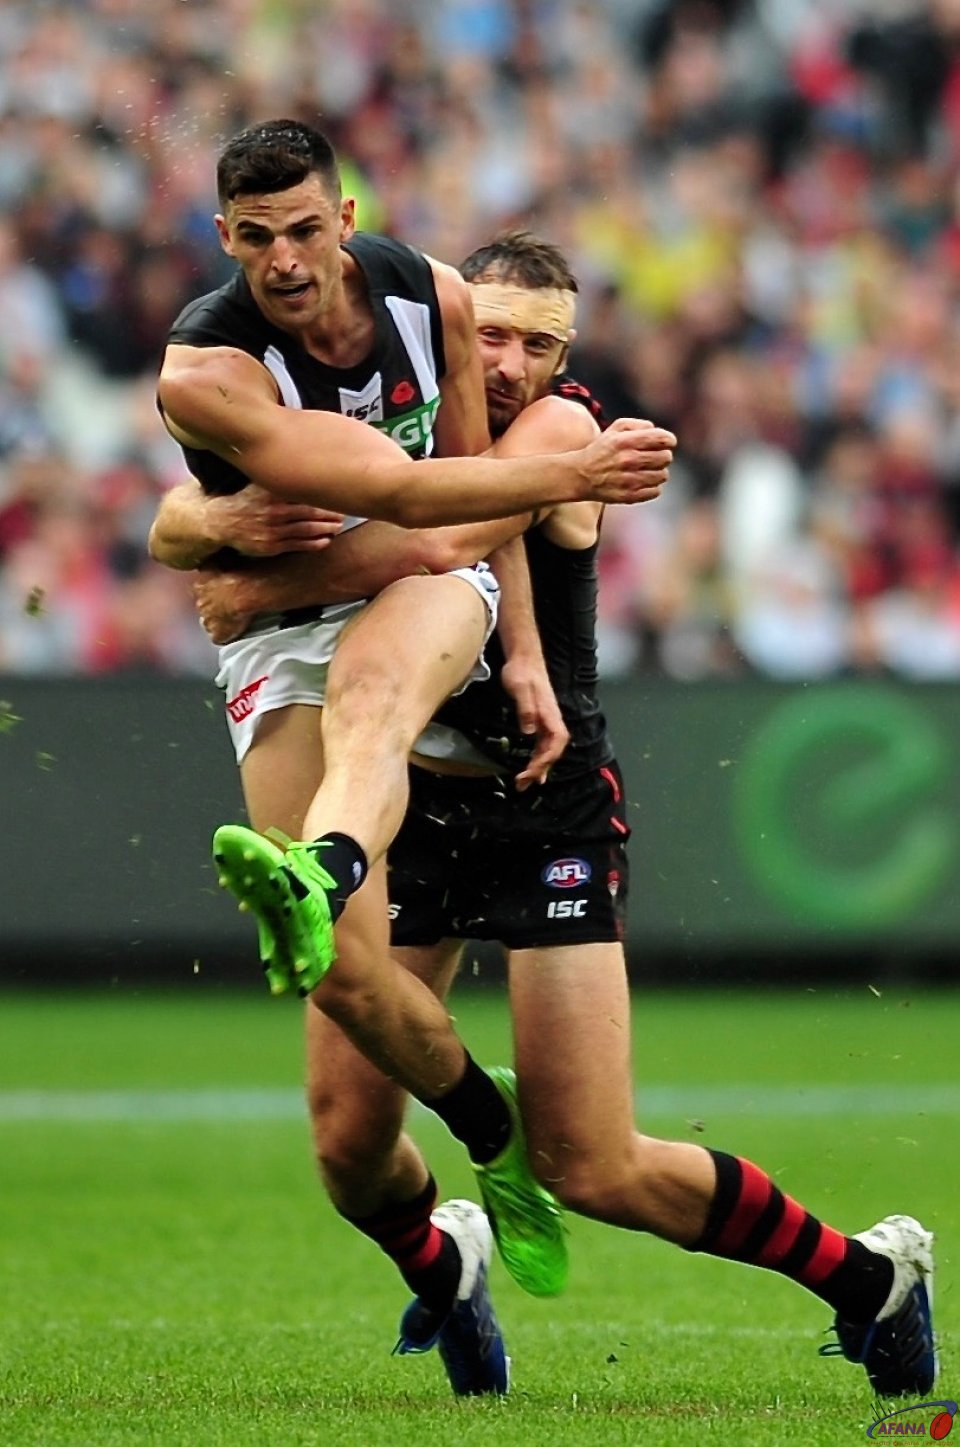 Pendlebury under pressure from Watson